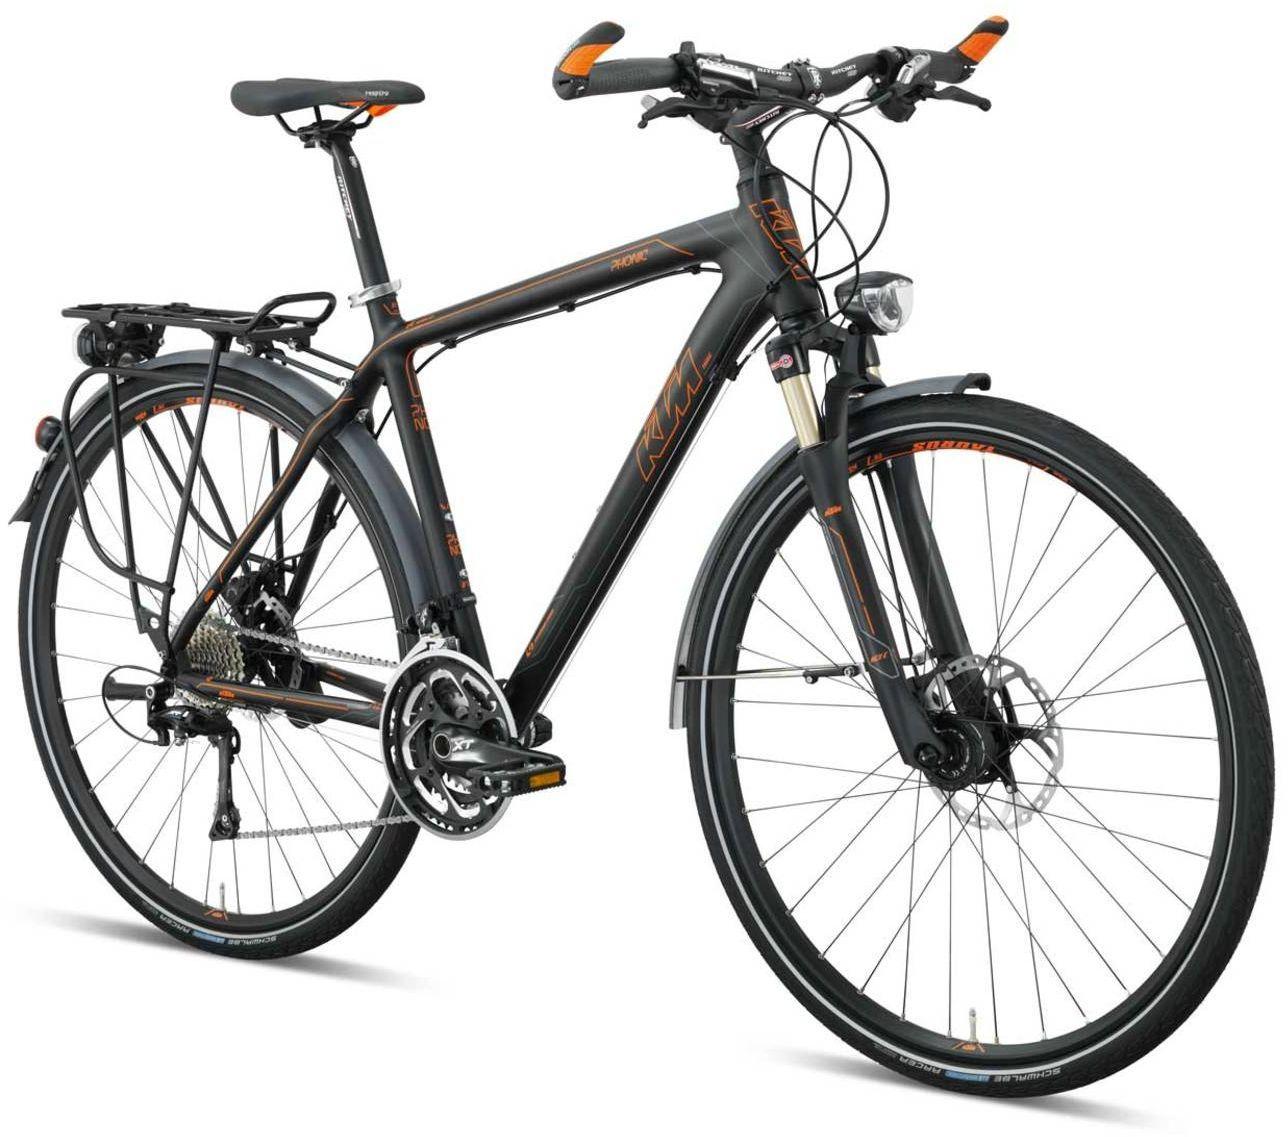 ktm phonic lc 2014 review - the bike list